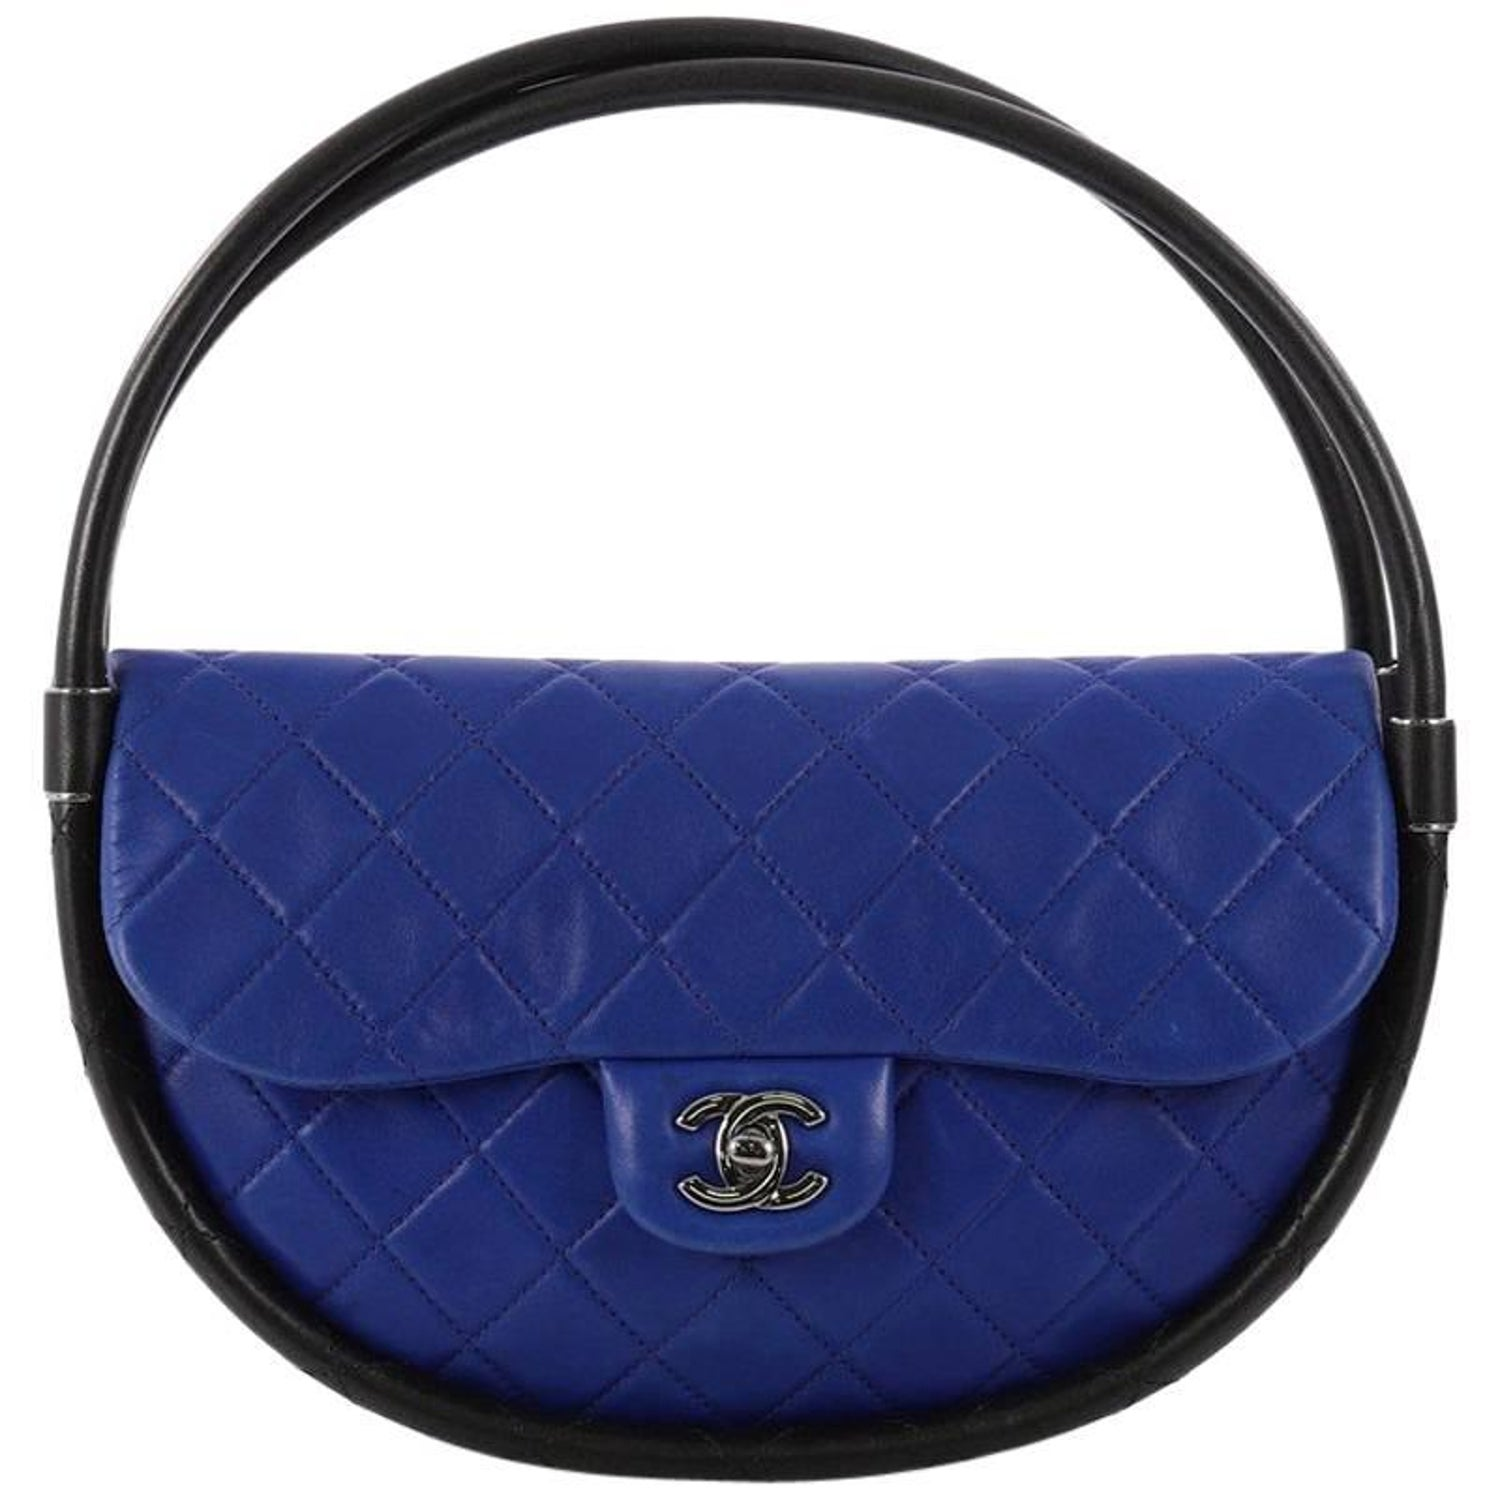 e75df5f62c32 Chanel Hula Hoop Bag Quilted Lambskin Small at 1stdibs